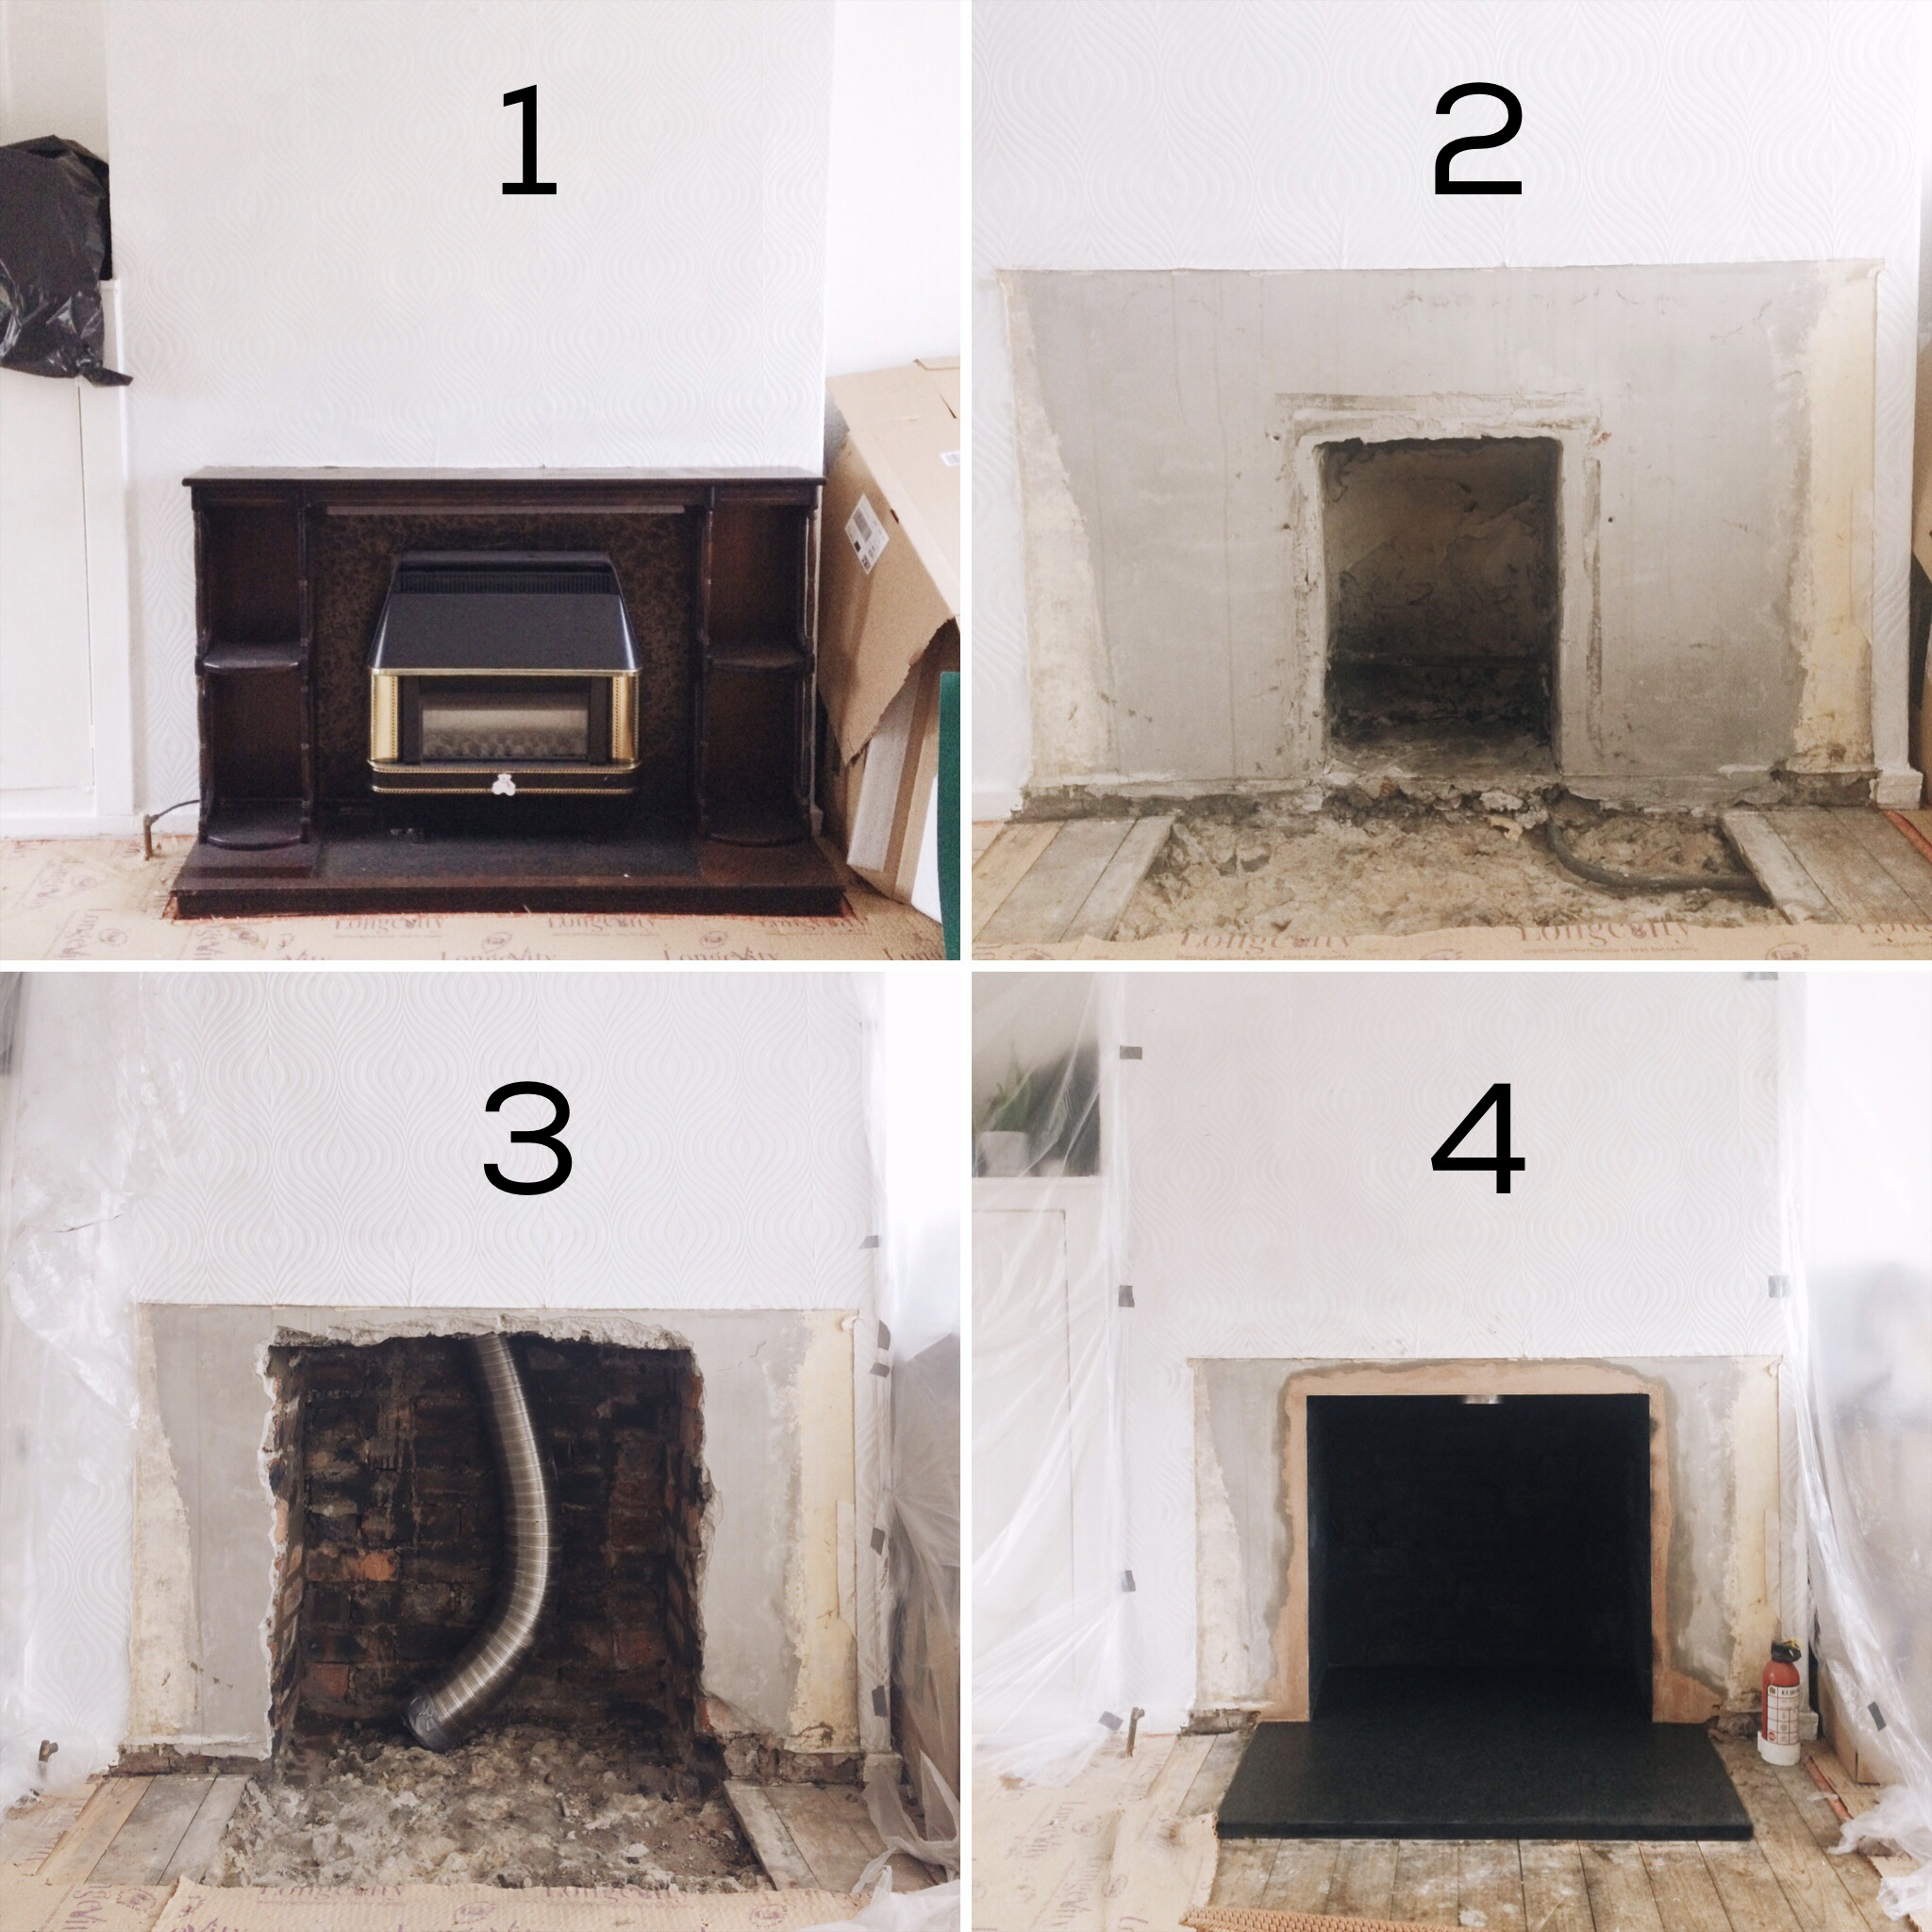 fat-creative-wood-burning-stove-installation-5-steps-guide-1.JPG